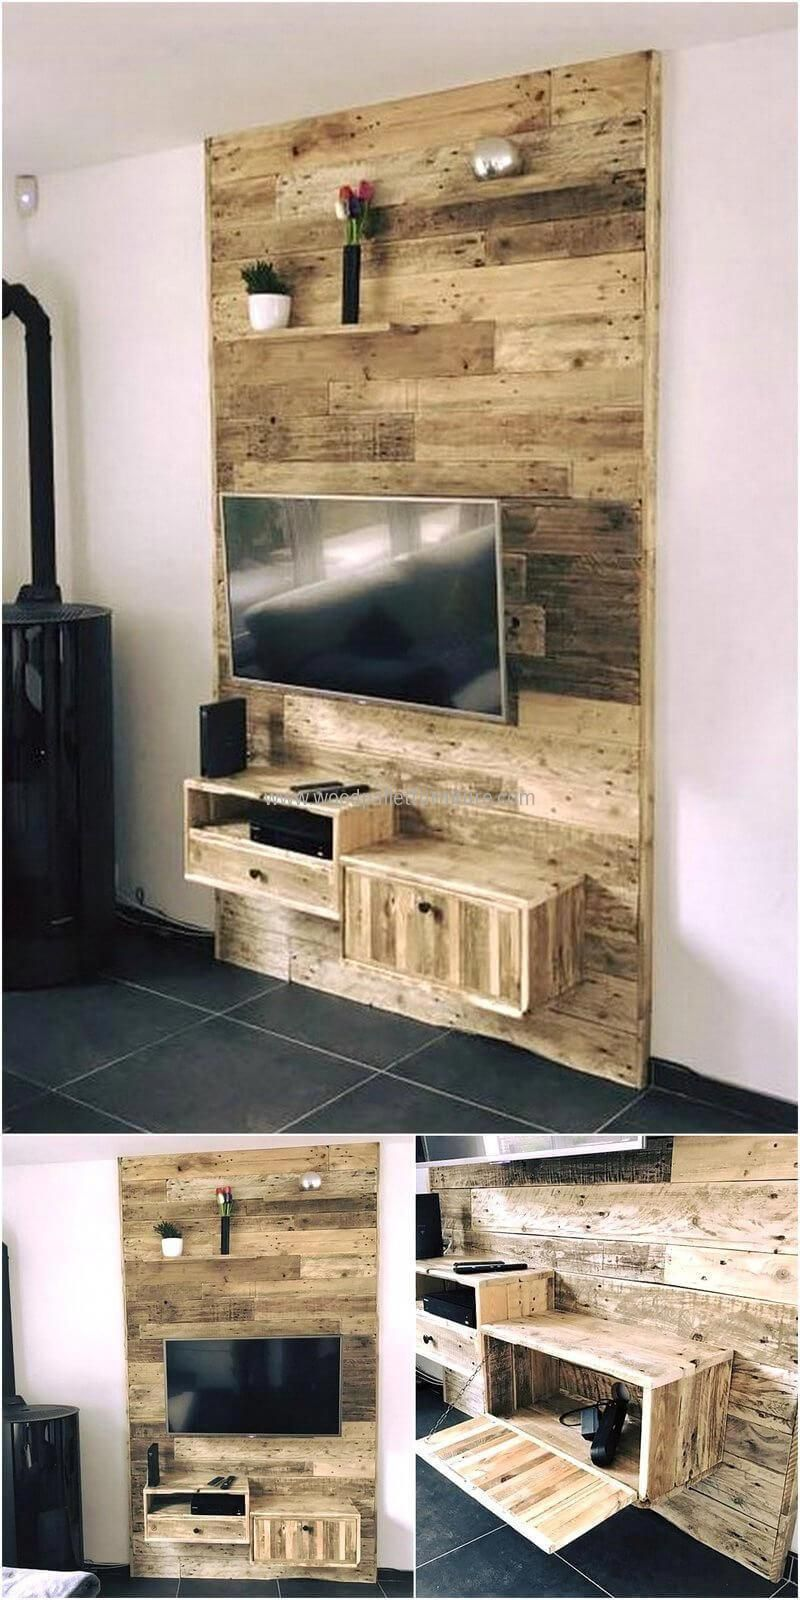 Newly Styled This Reused Wood Pallets Wall Tv Stand Looks Appealing The Whole Area Get Transformed By Use Wood Pallet Wall Palette Furniture Wooden Tv Stands